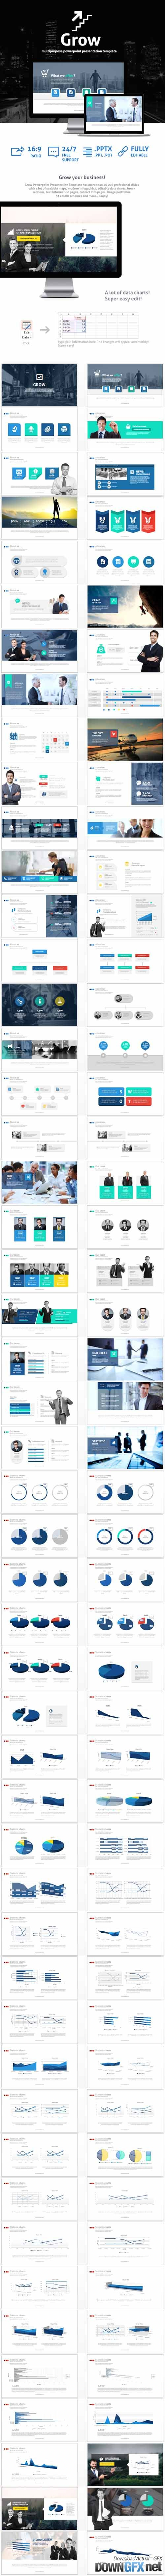 Grow Powerpoint Presentation Template 19859625